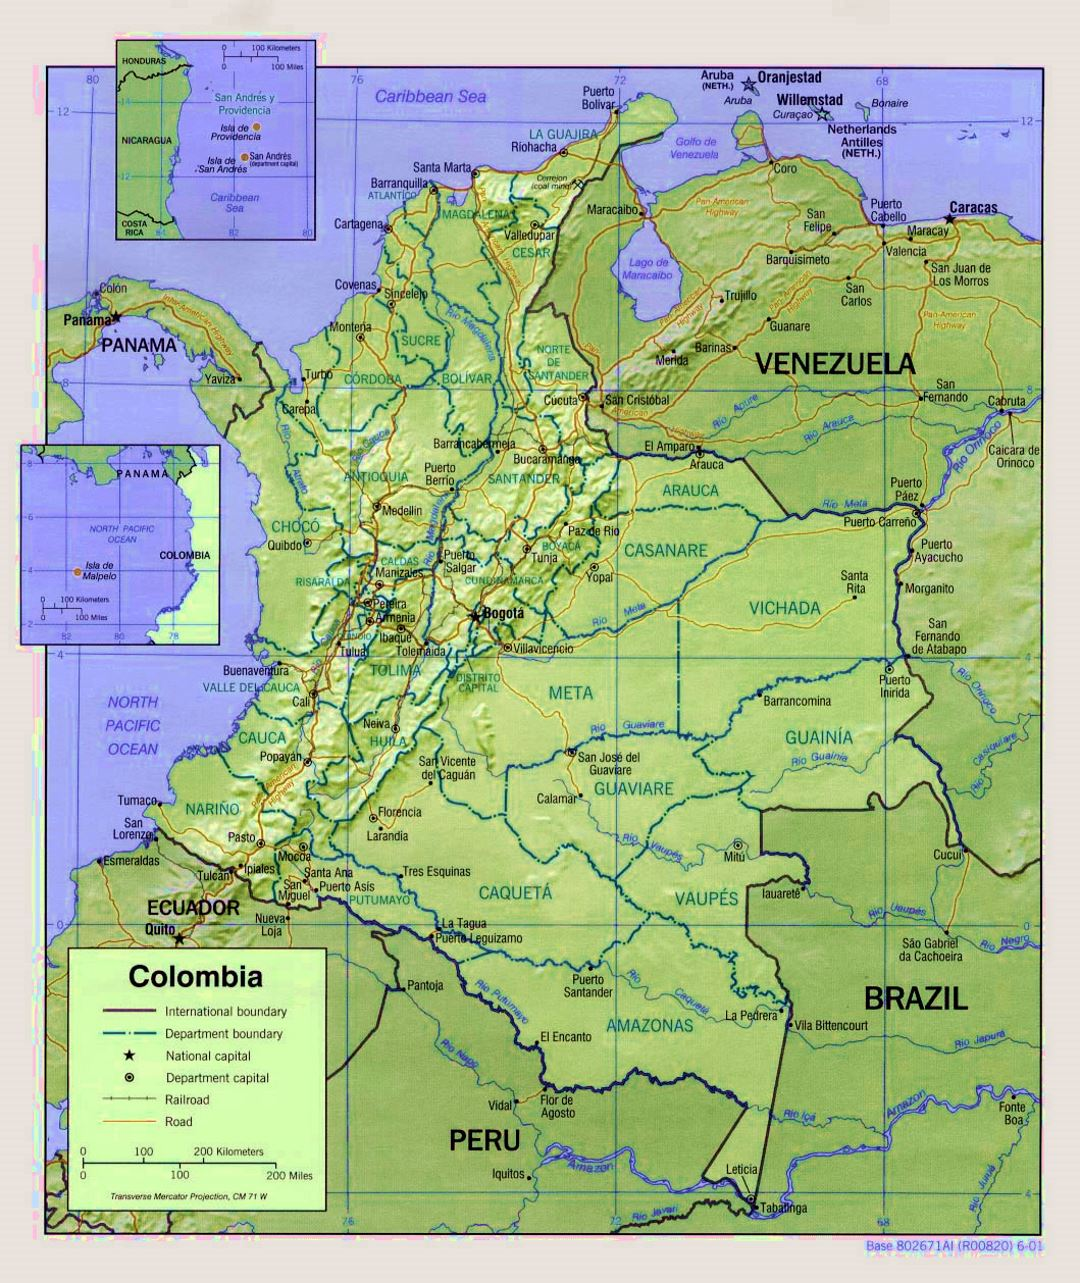 Detailed political and administrative map of Colombia with relief, roads and major cities - 2001